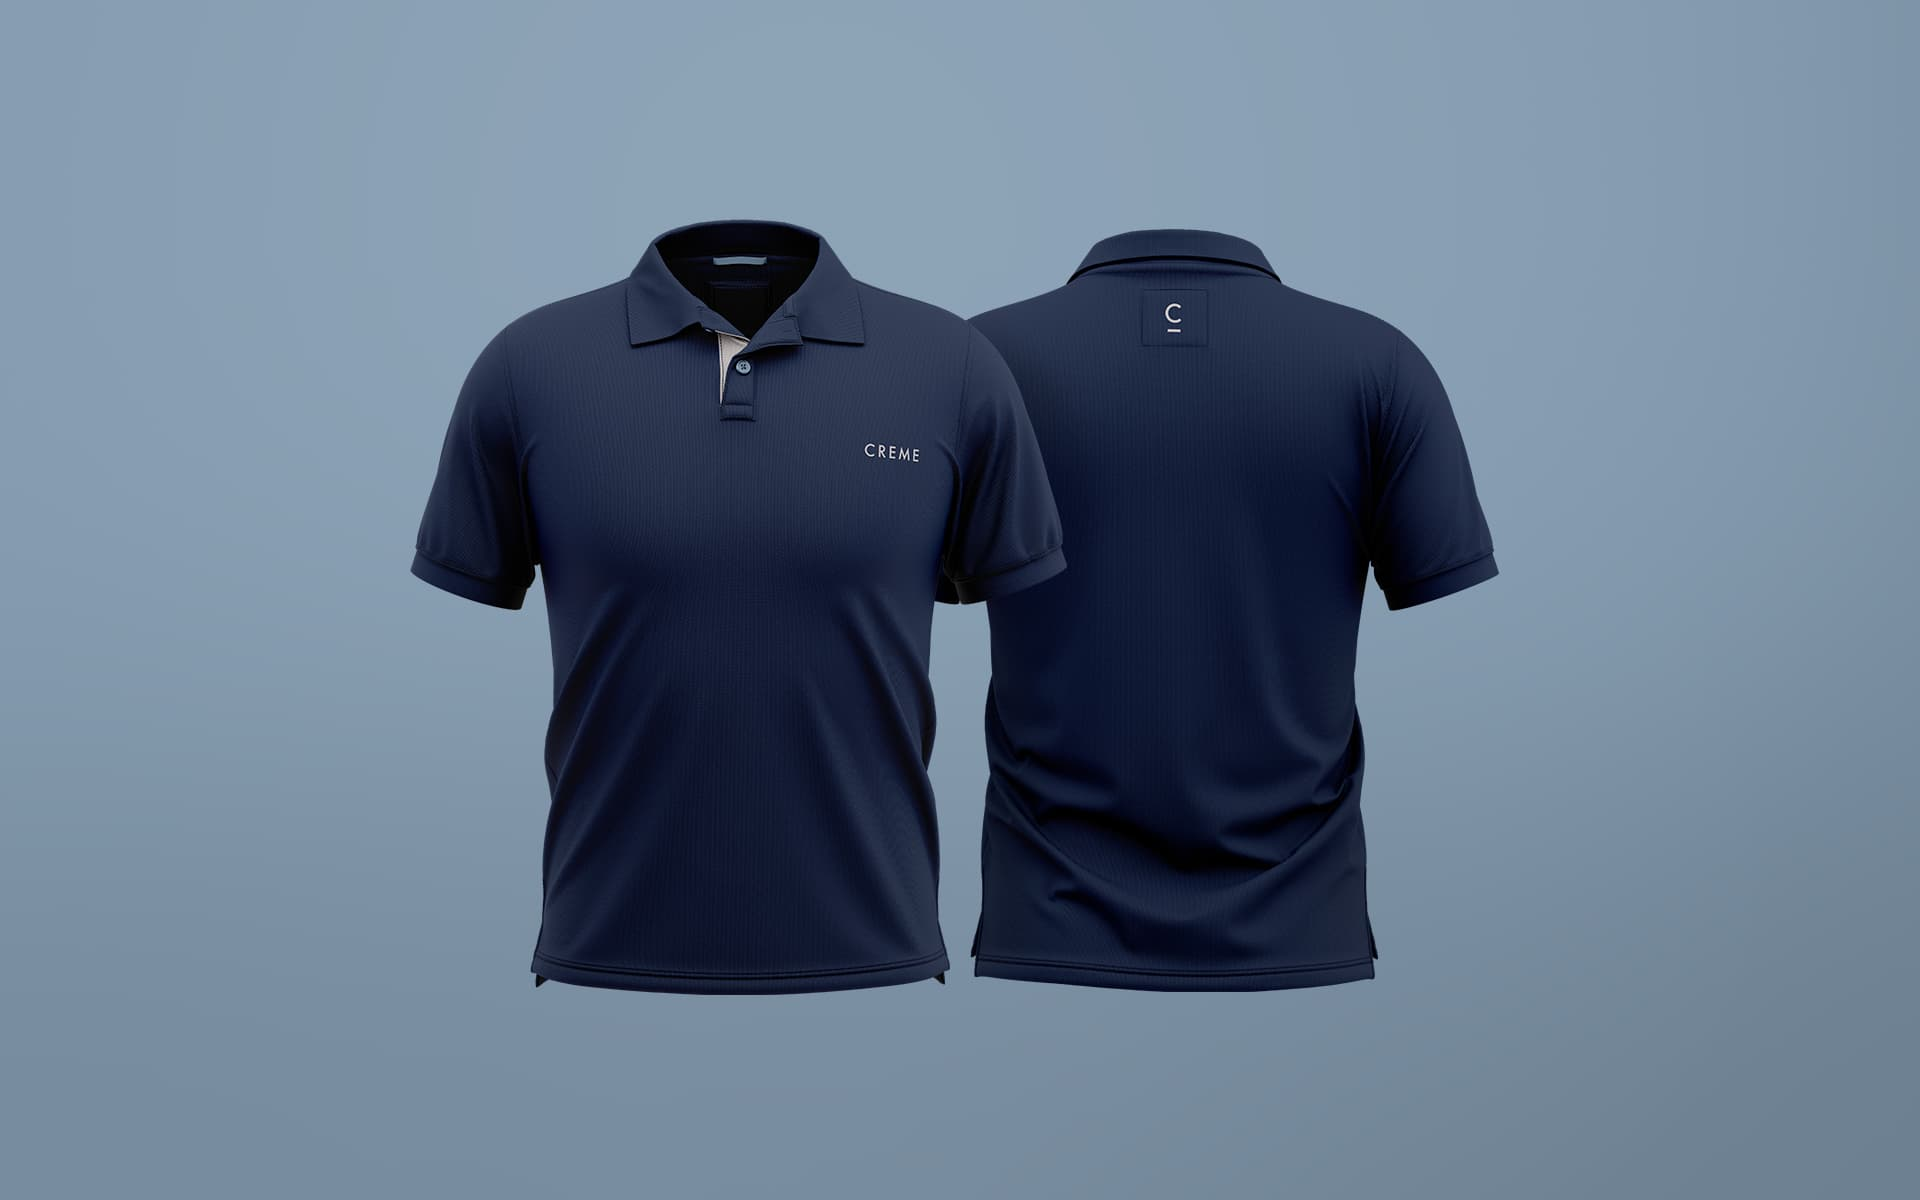 Corporate uniform design, polo shirt